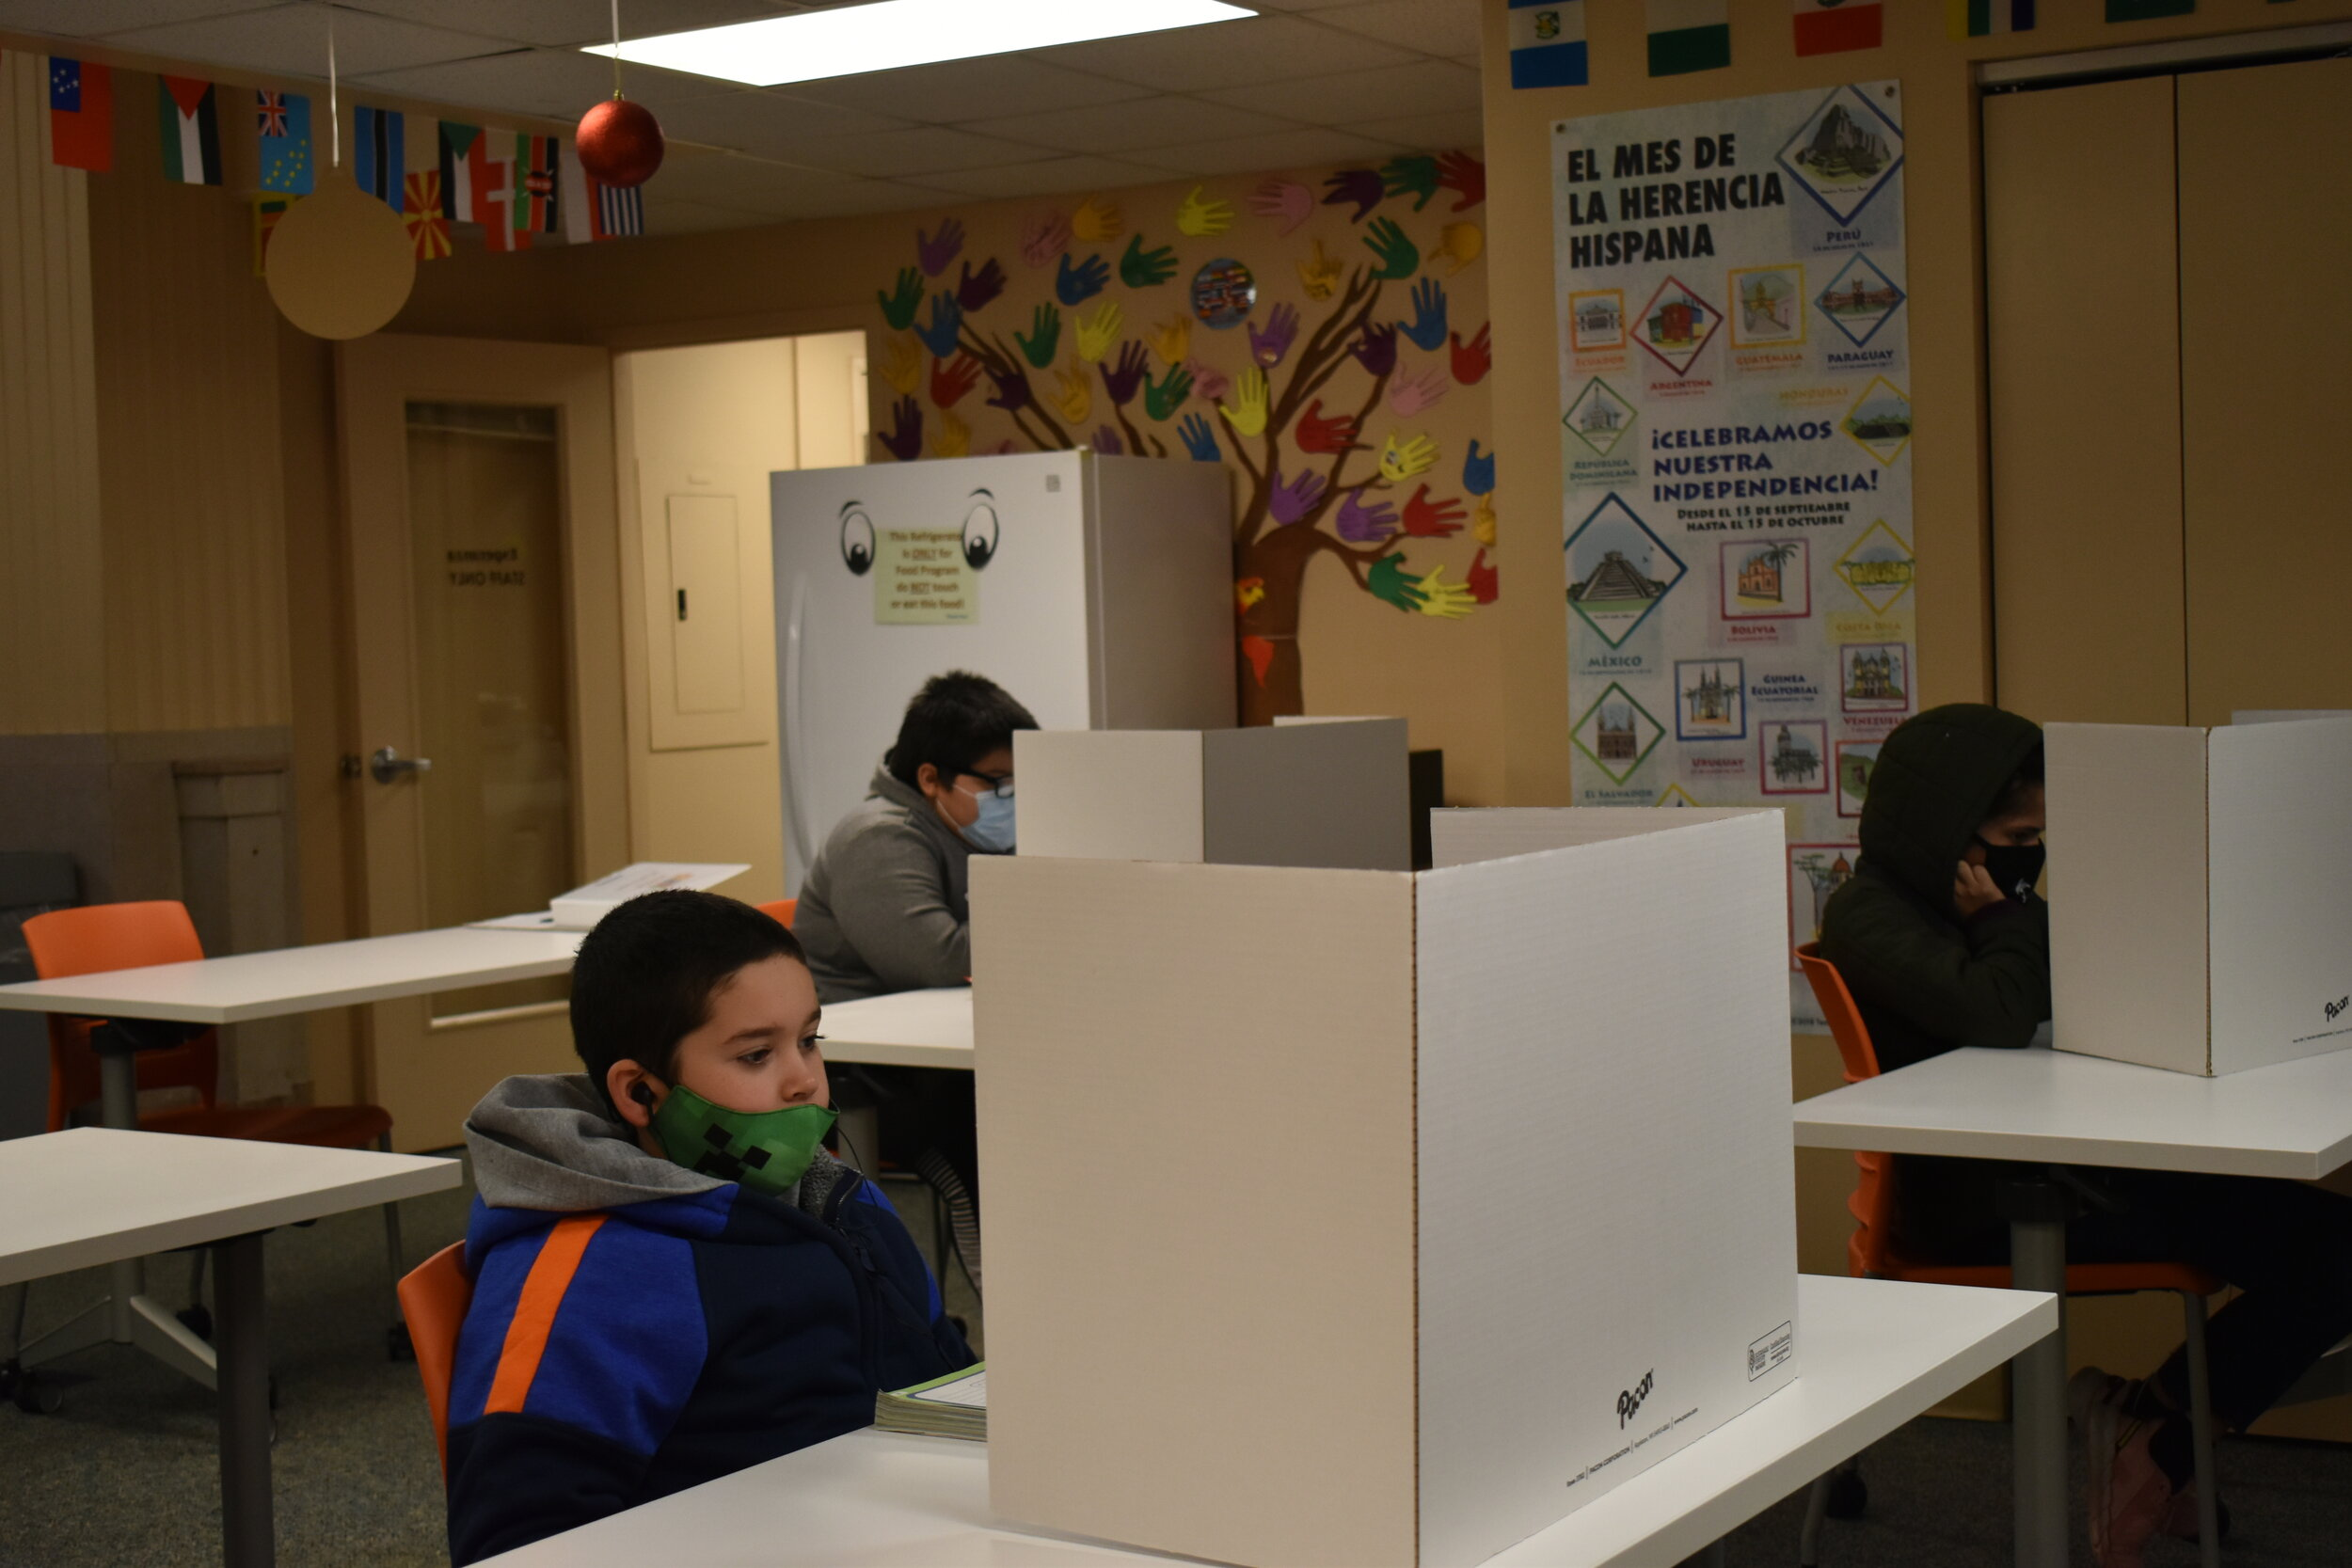 Cleveland learning pods help ESL learners during remote learning, but space, funding are limited